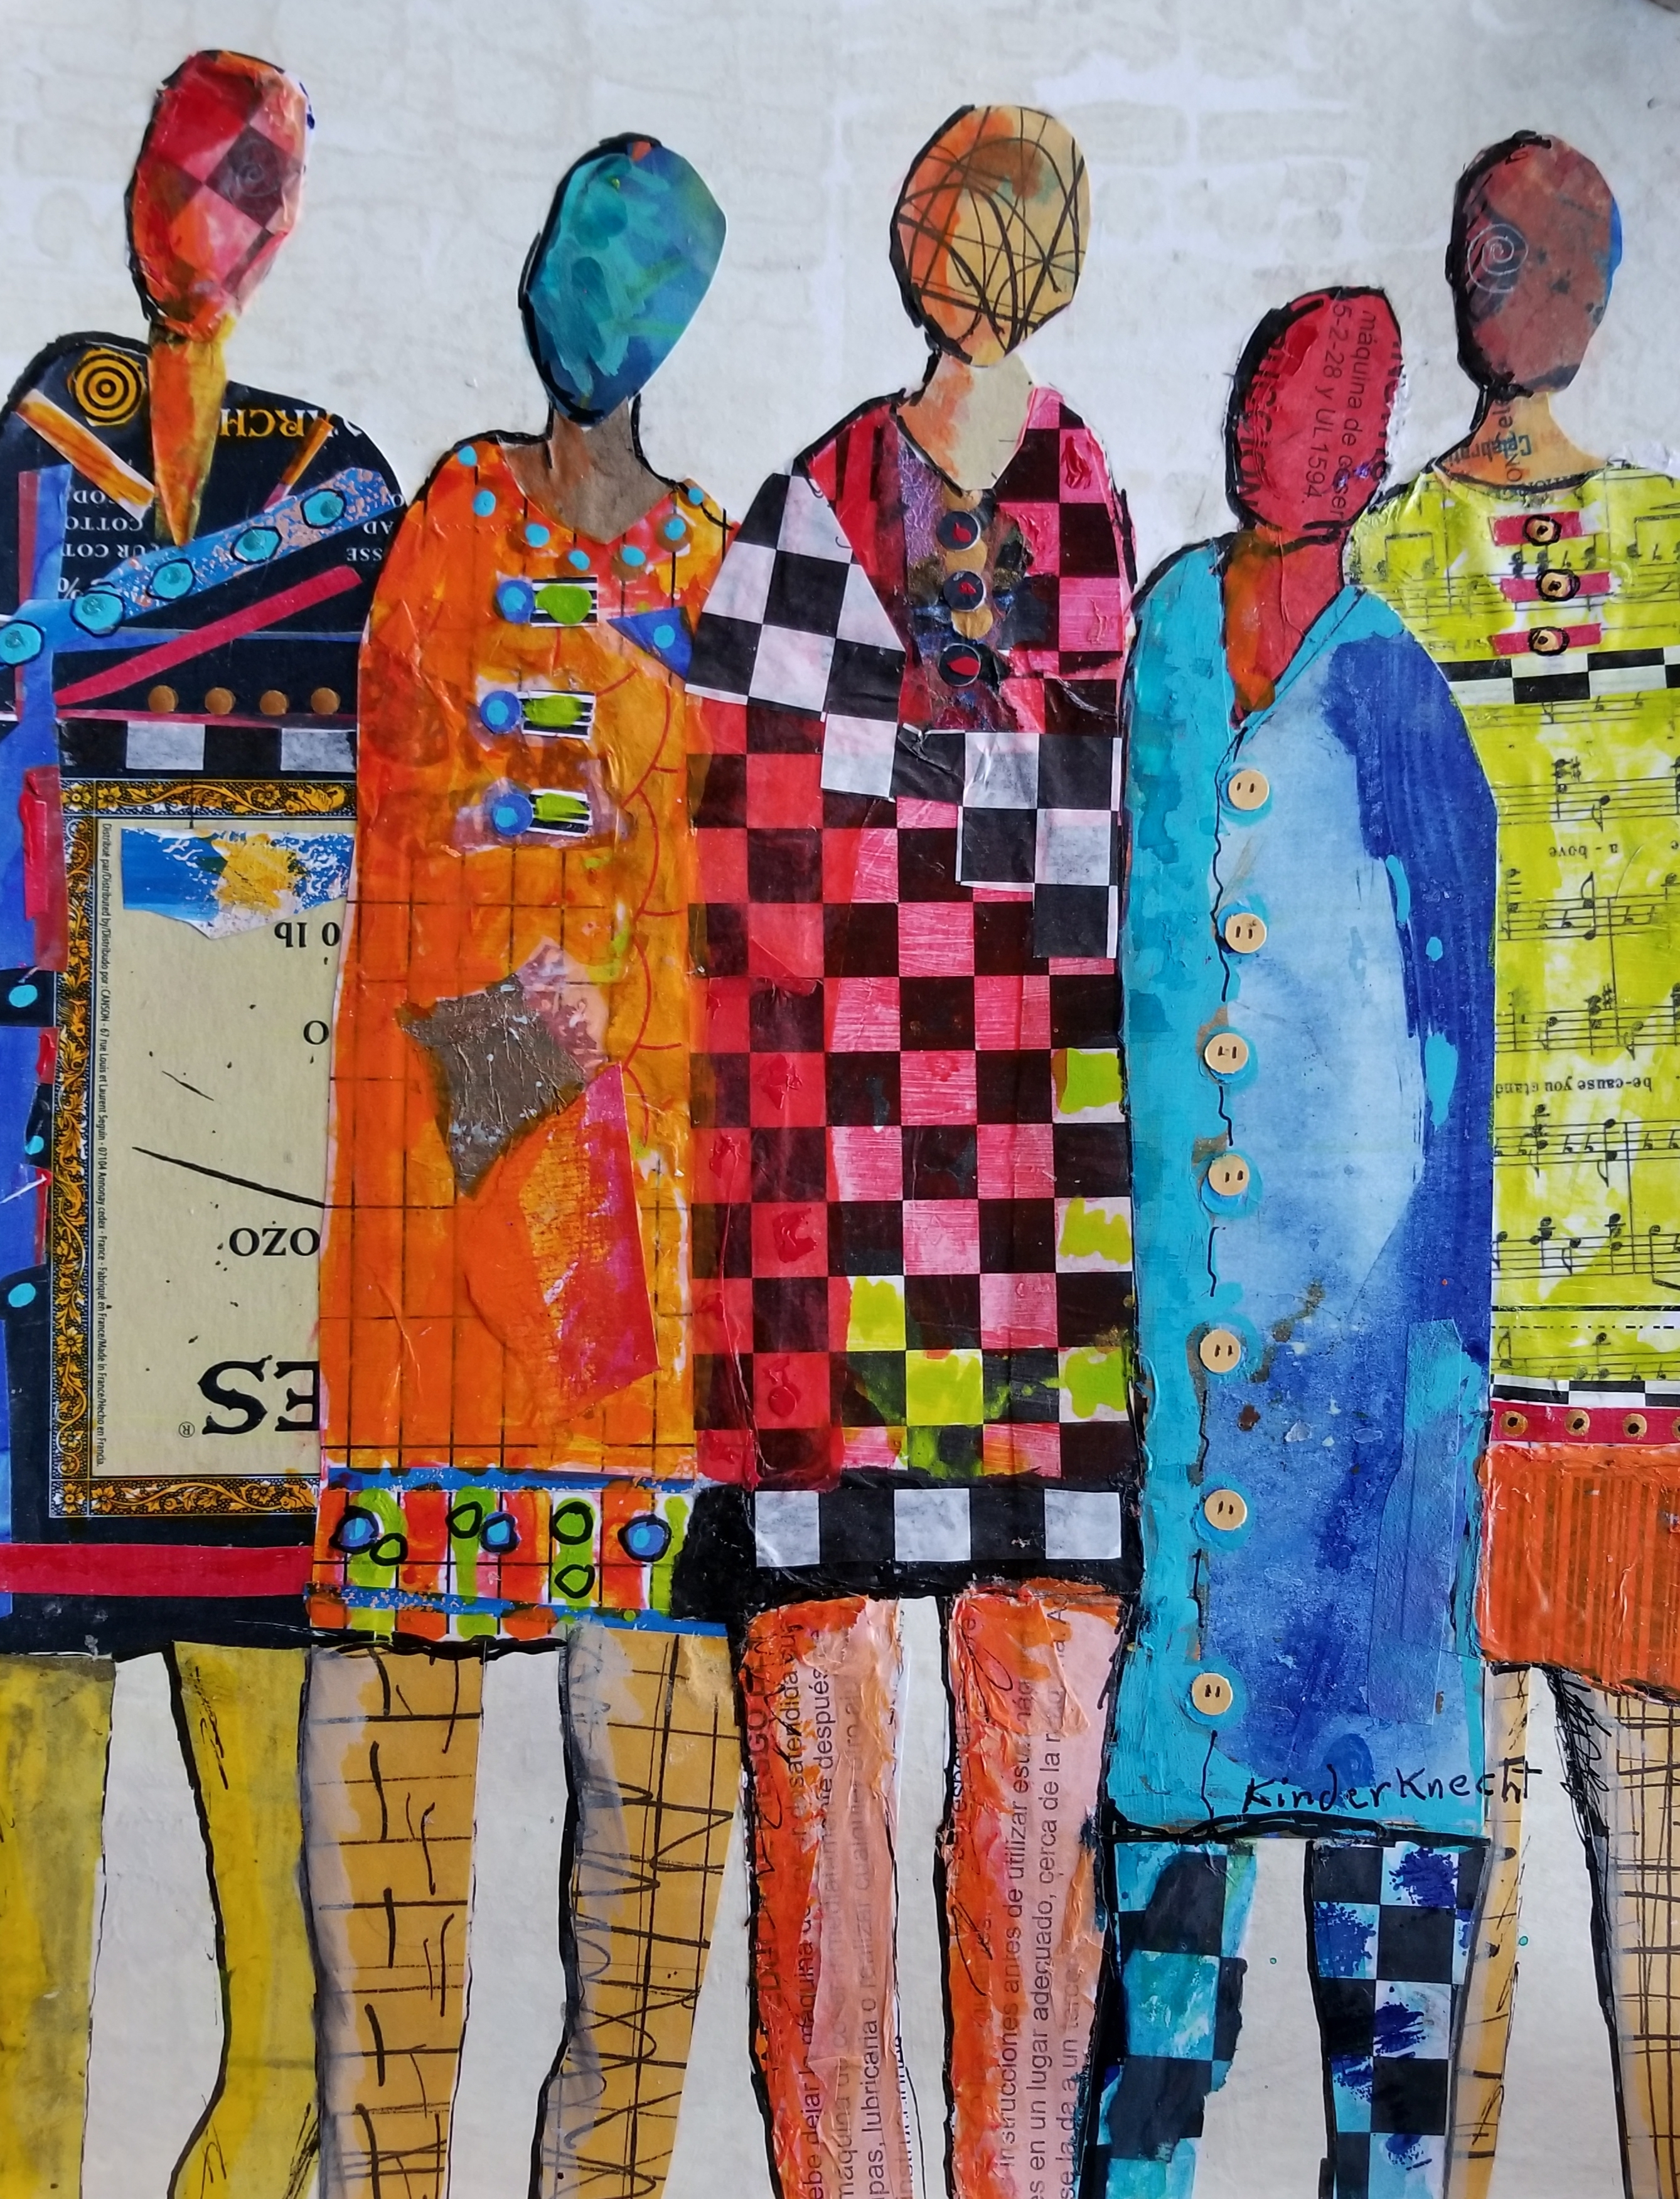 A collage of four faceless figures in bright colors and patterns